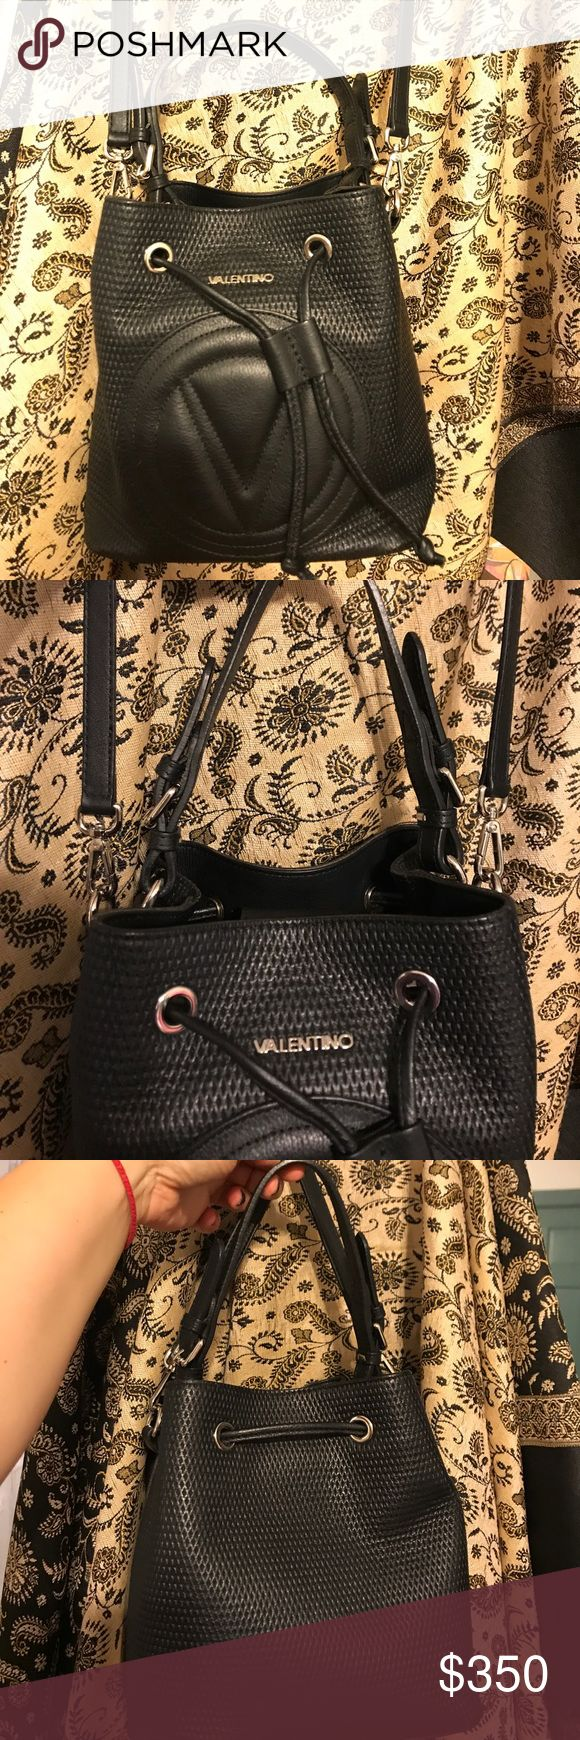 Valentino by Mario 🖤black leather crossbody🖤 Authentic  Black Mario Valentino leather Crossbody bucket bag excellent condition only worn a few times purchased this year from off Saks Fifth Avenue comes with dust tag receipt and all tags adjustable top leather strap- 🖤🖤🖤two zip compartments one side pocket ! Medium sized bag silver hardware Valentino Bags Crossbody Bags